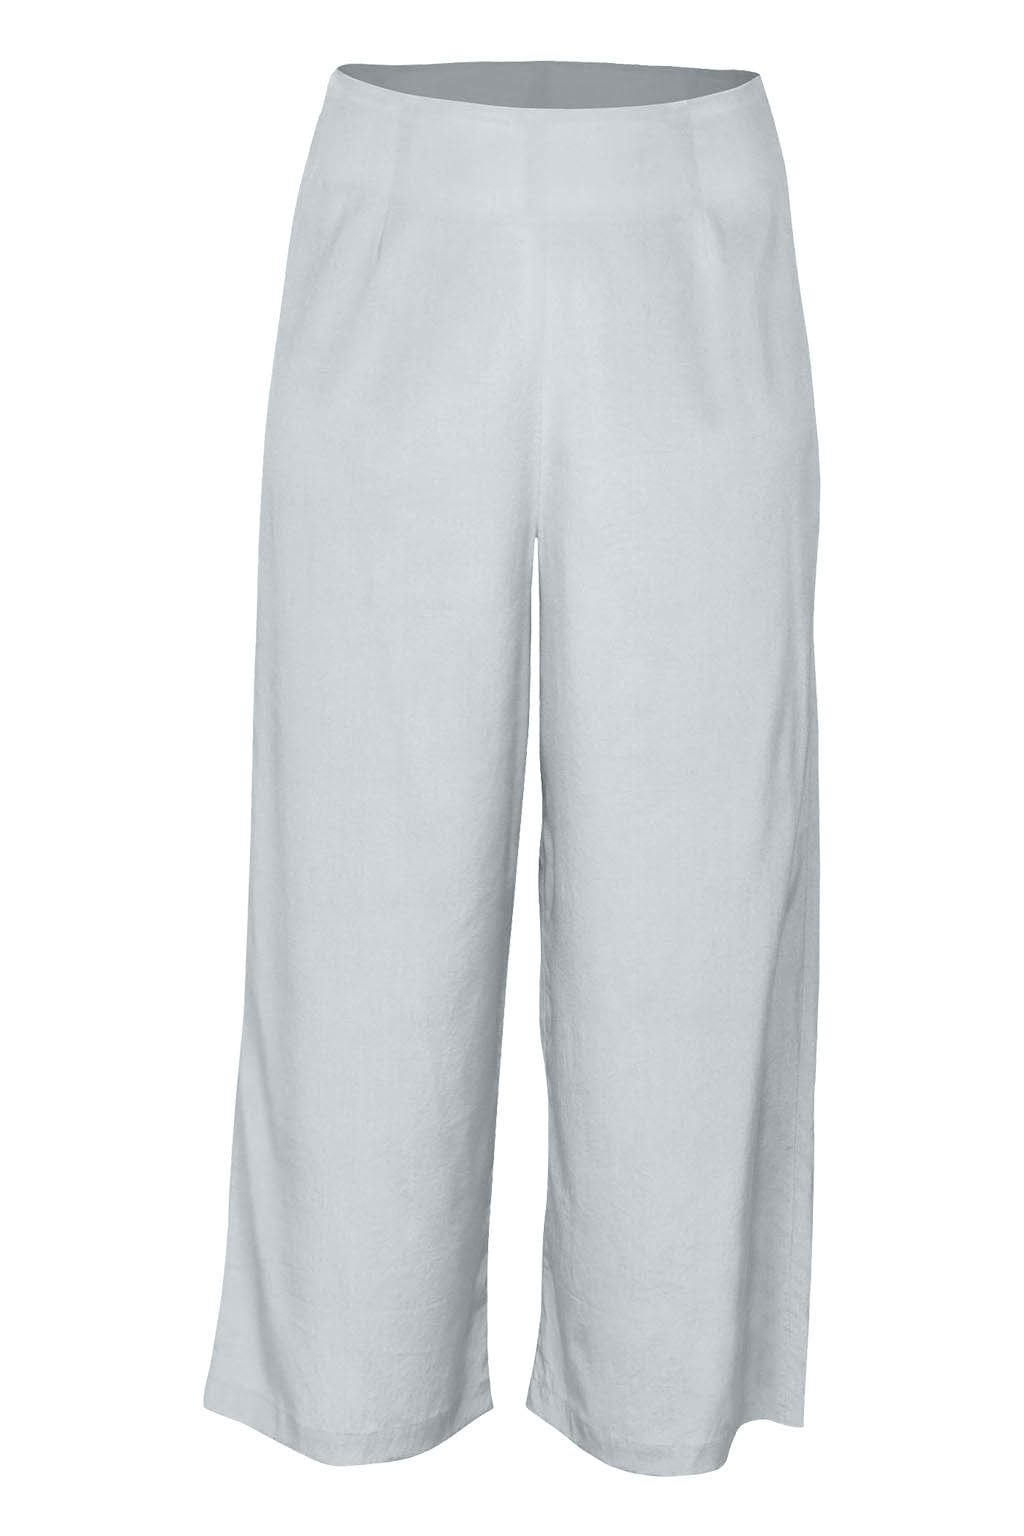 Float Culottes ghost mannequin front